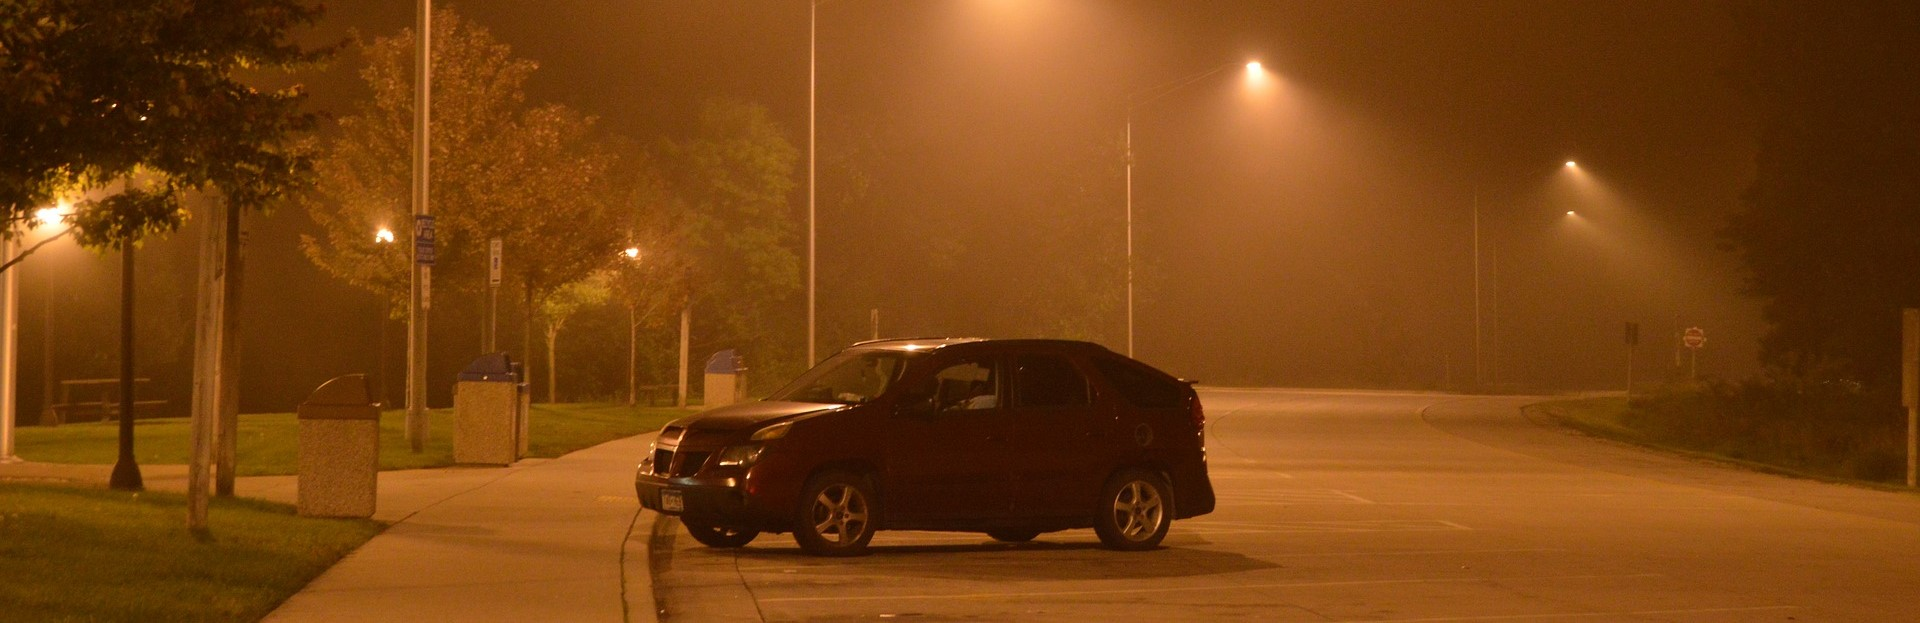 Car At Night in Columbia, Maryland   Breast Cancer Car Donations